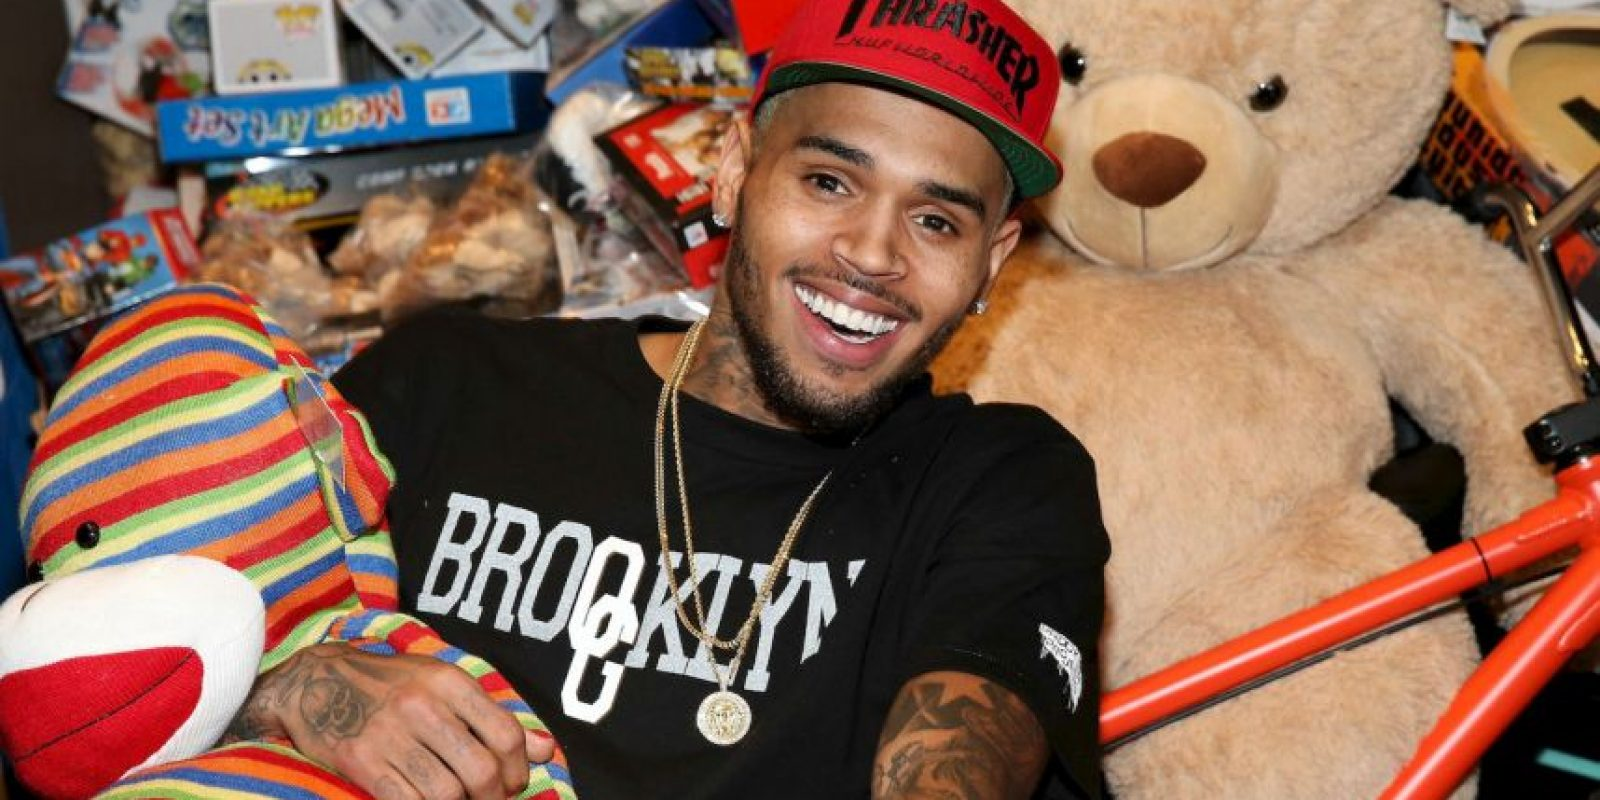 Chris Brown Foto: Getty Images